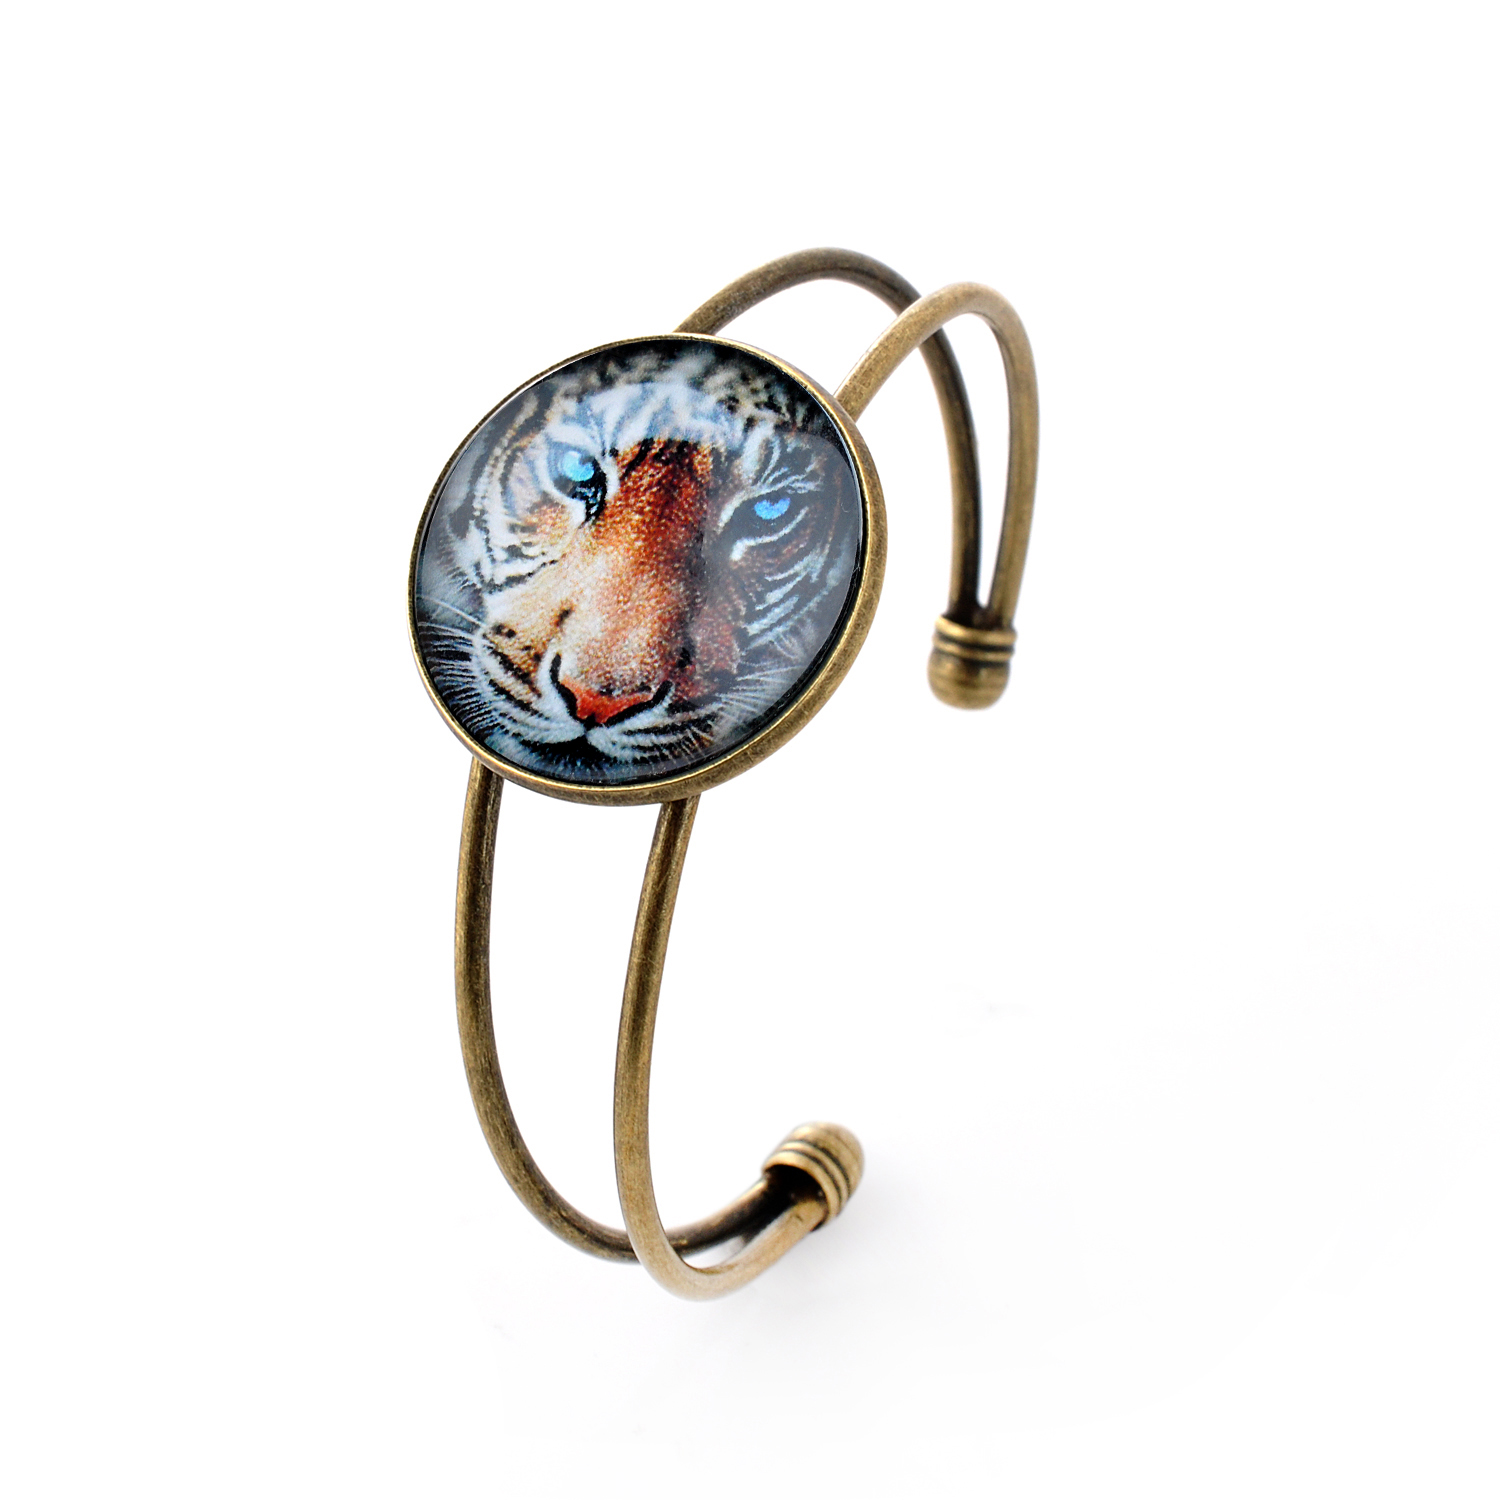 Lureme Simple Jewelry Time Gem Series Animals Tigers Disc Charm Open Bangle Bracelet for Women and Girl (06002686)